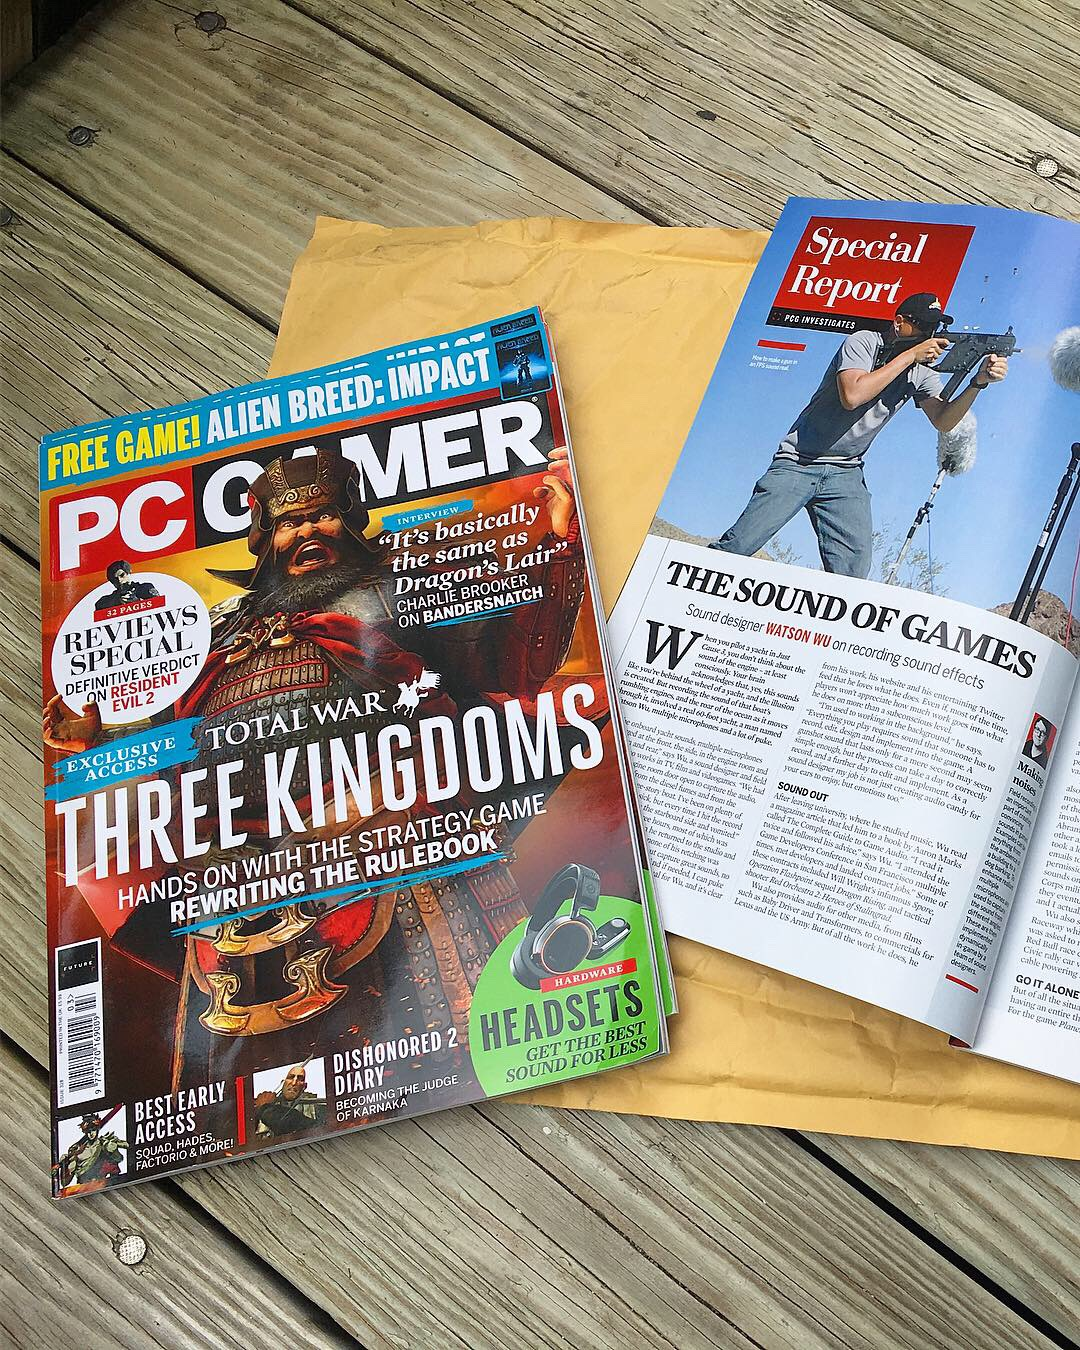 PC Gamer Magazine - March 2019 UK Edition